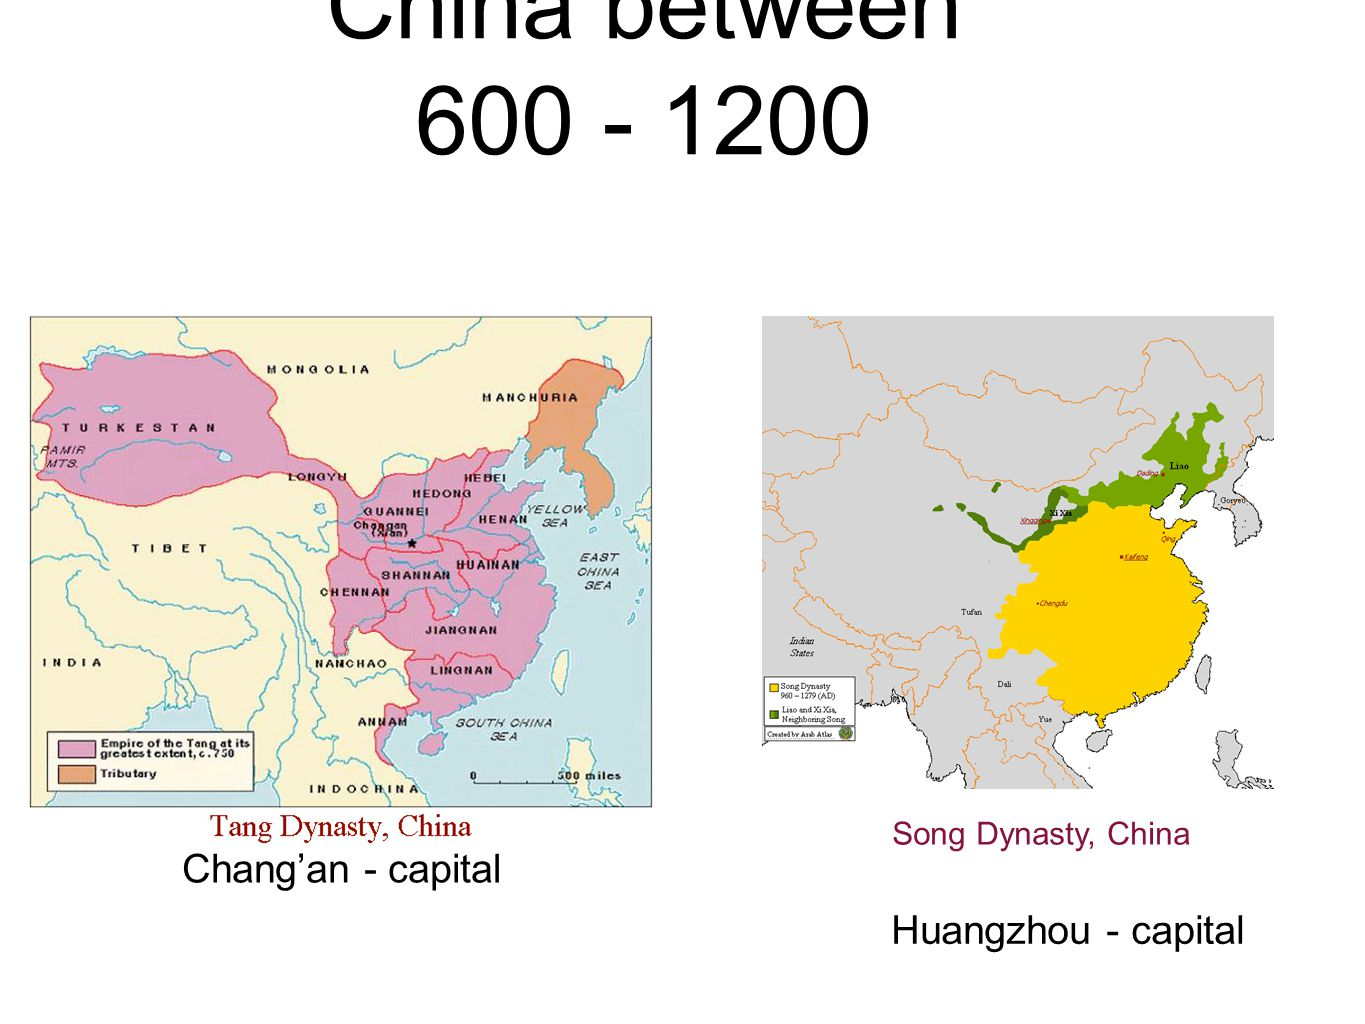 China between 600 - 1200 Song Dynasty, China Chang'an - capital Huangzhou - capital